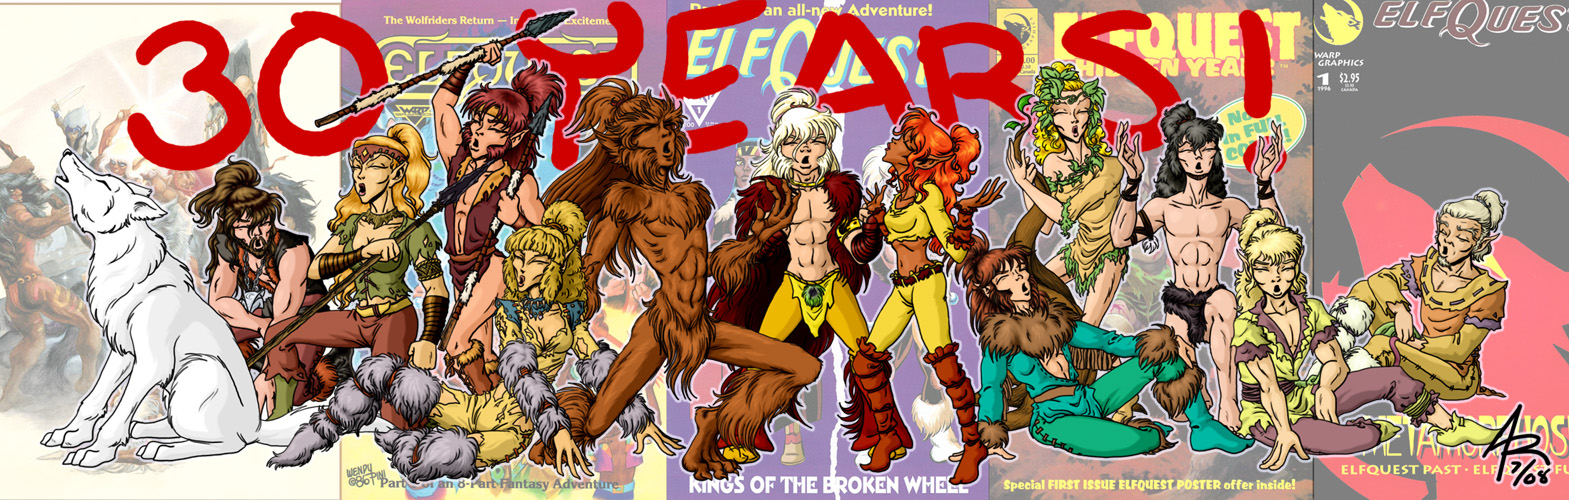 Elfquest: 30 years by vaiya